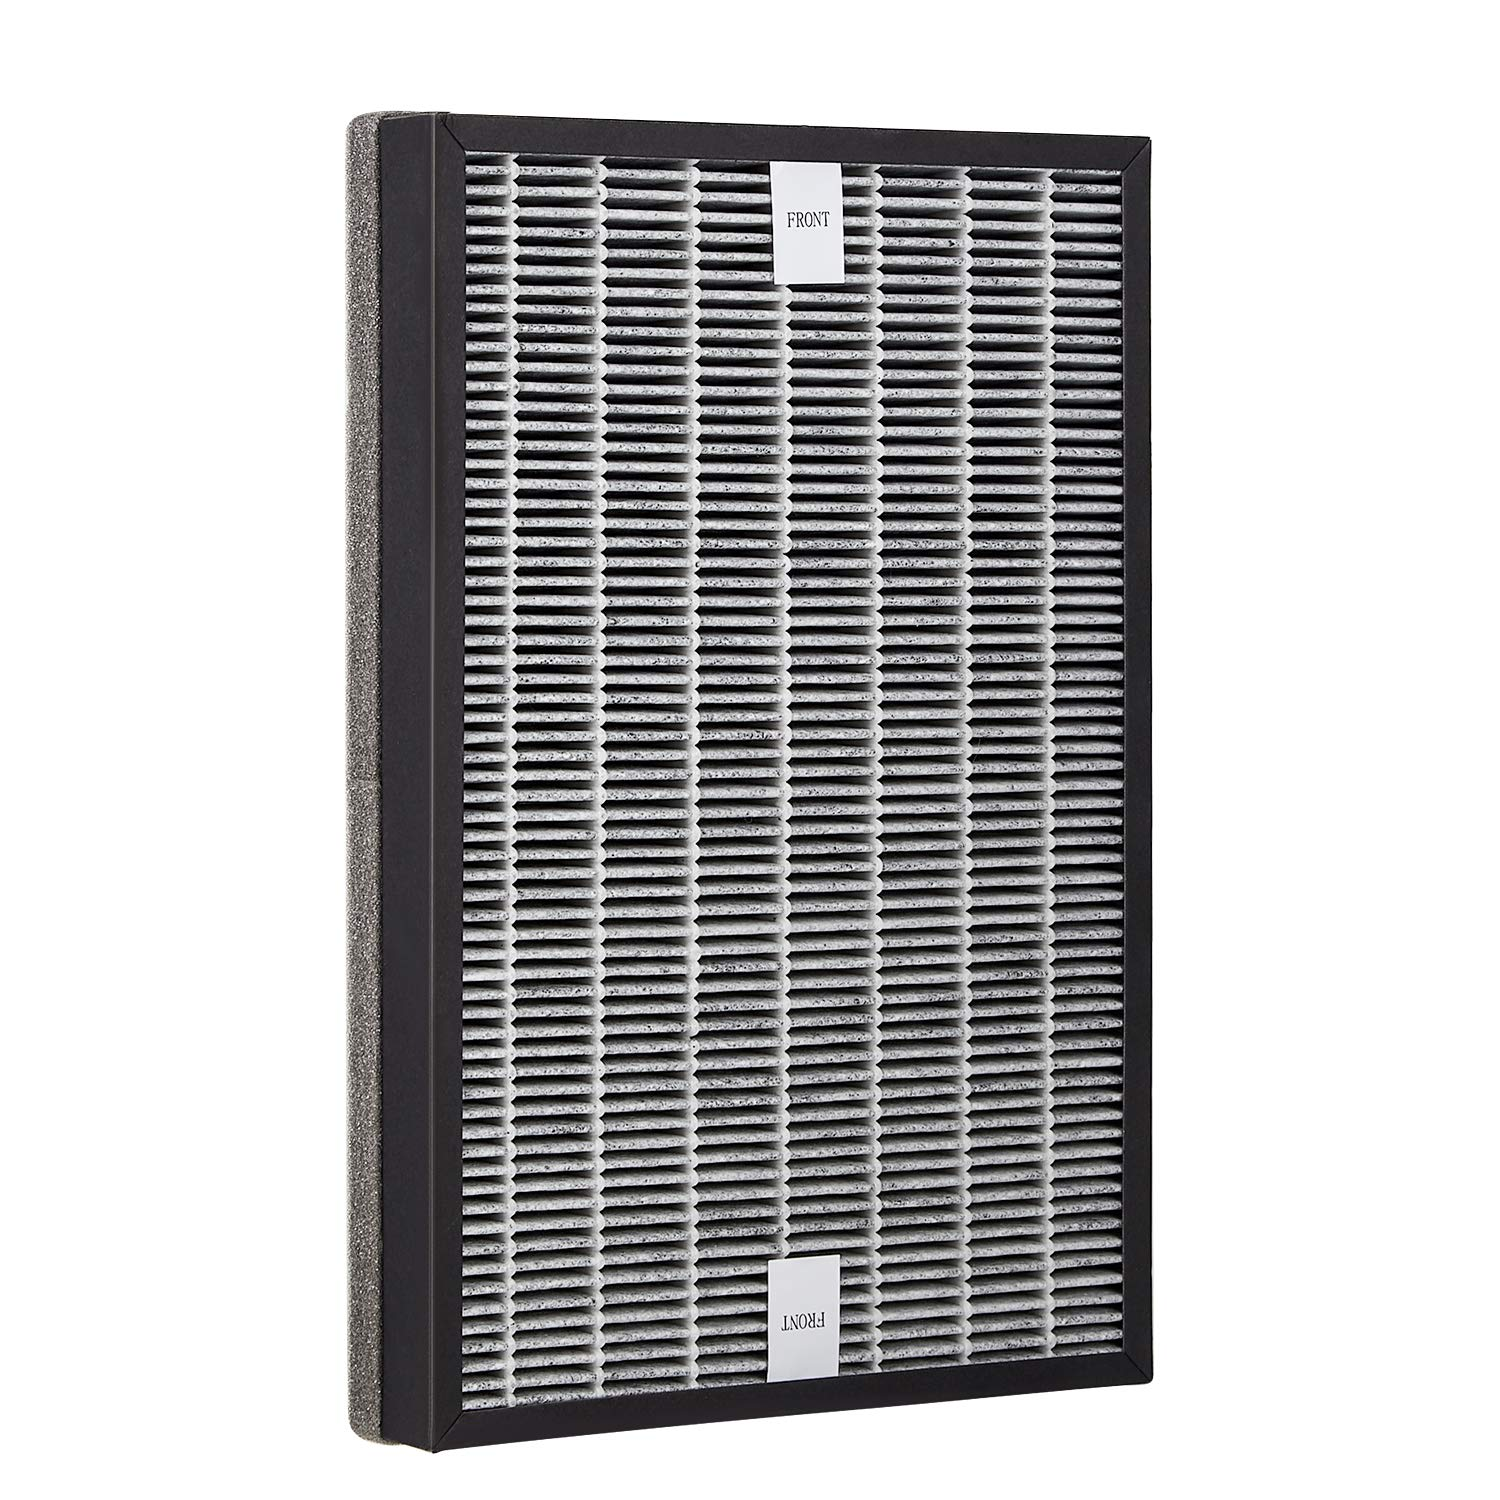 BEAUTURAL Air Purifier Replacement Compound Filters with True HEPA and Activated Carbon Filters